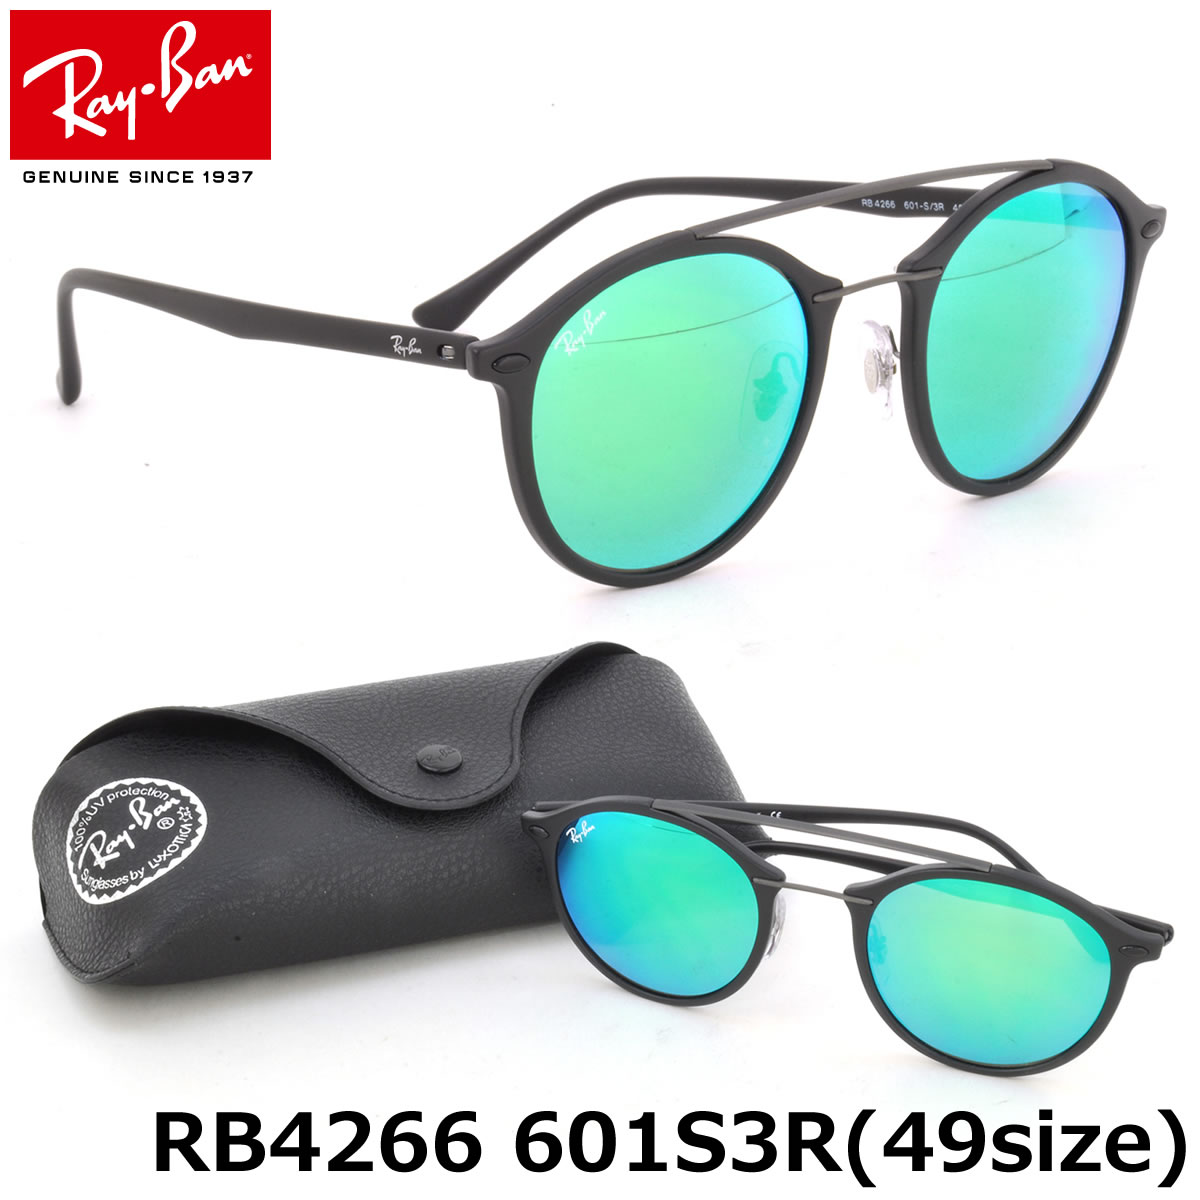 84dcda7e82f Ray-Ban Sunglasses RB4266 601S3R 49size TECH LIGHT RAY GENUINE NEW rayban  ray ban